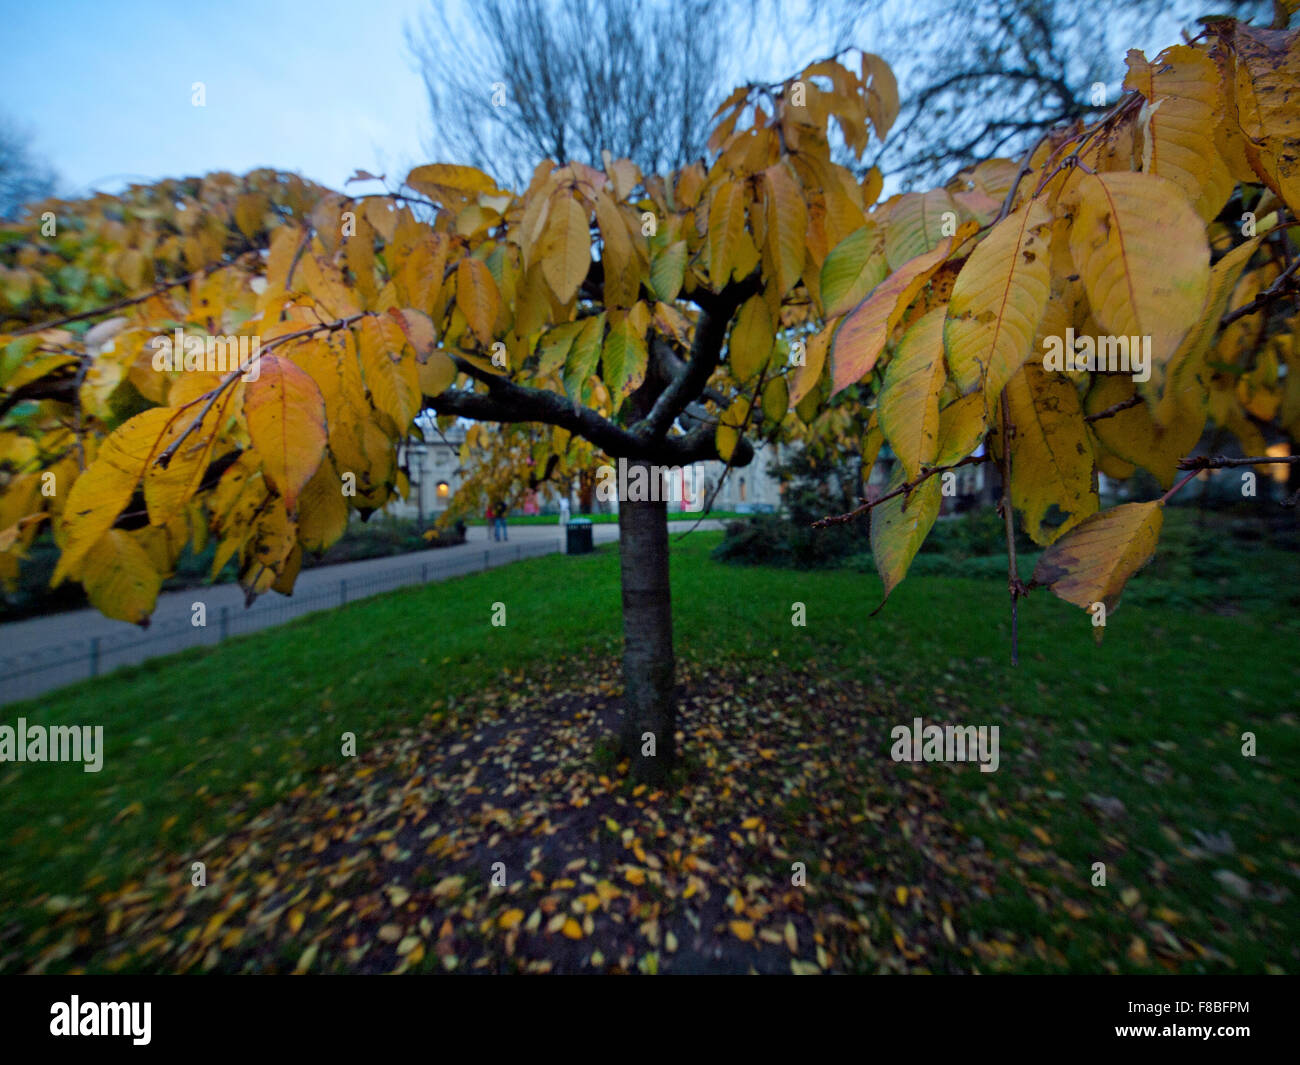 A Small Weeping Elm during autumn in Pavilion Gardens, Brighton - Stock Image